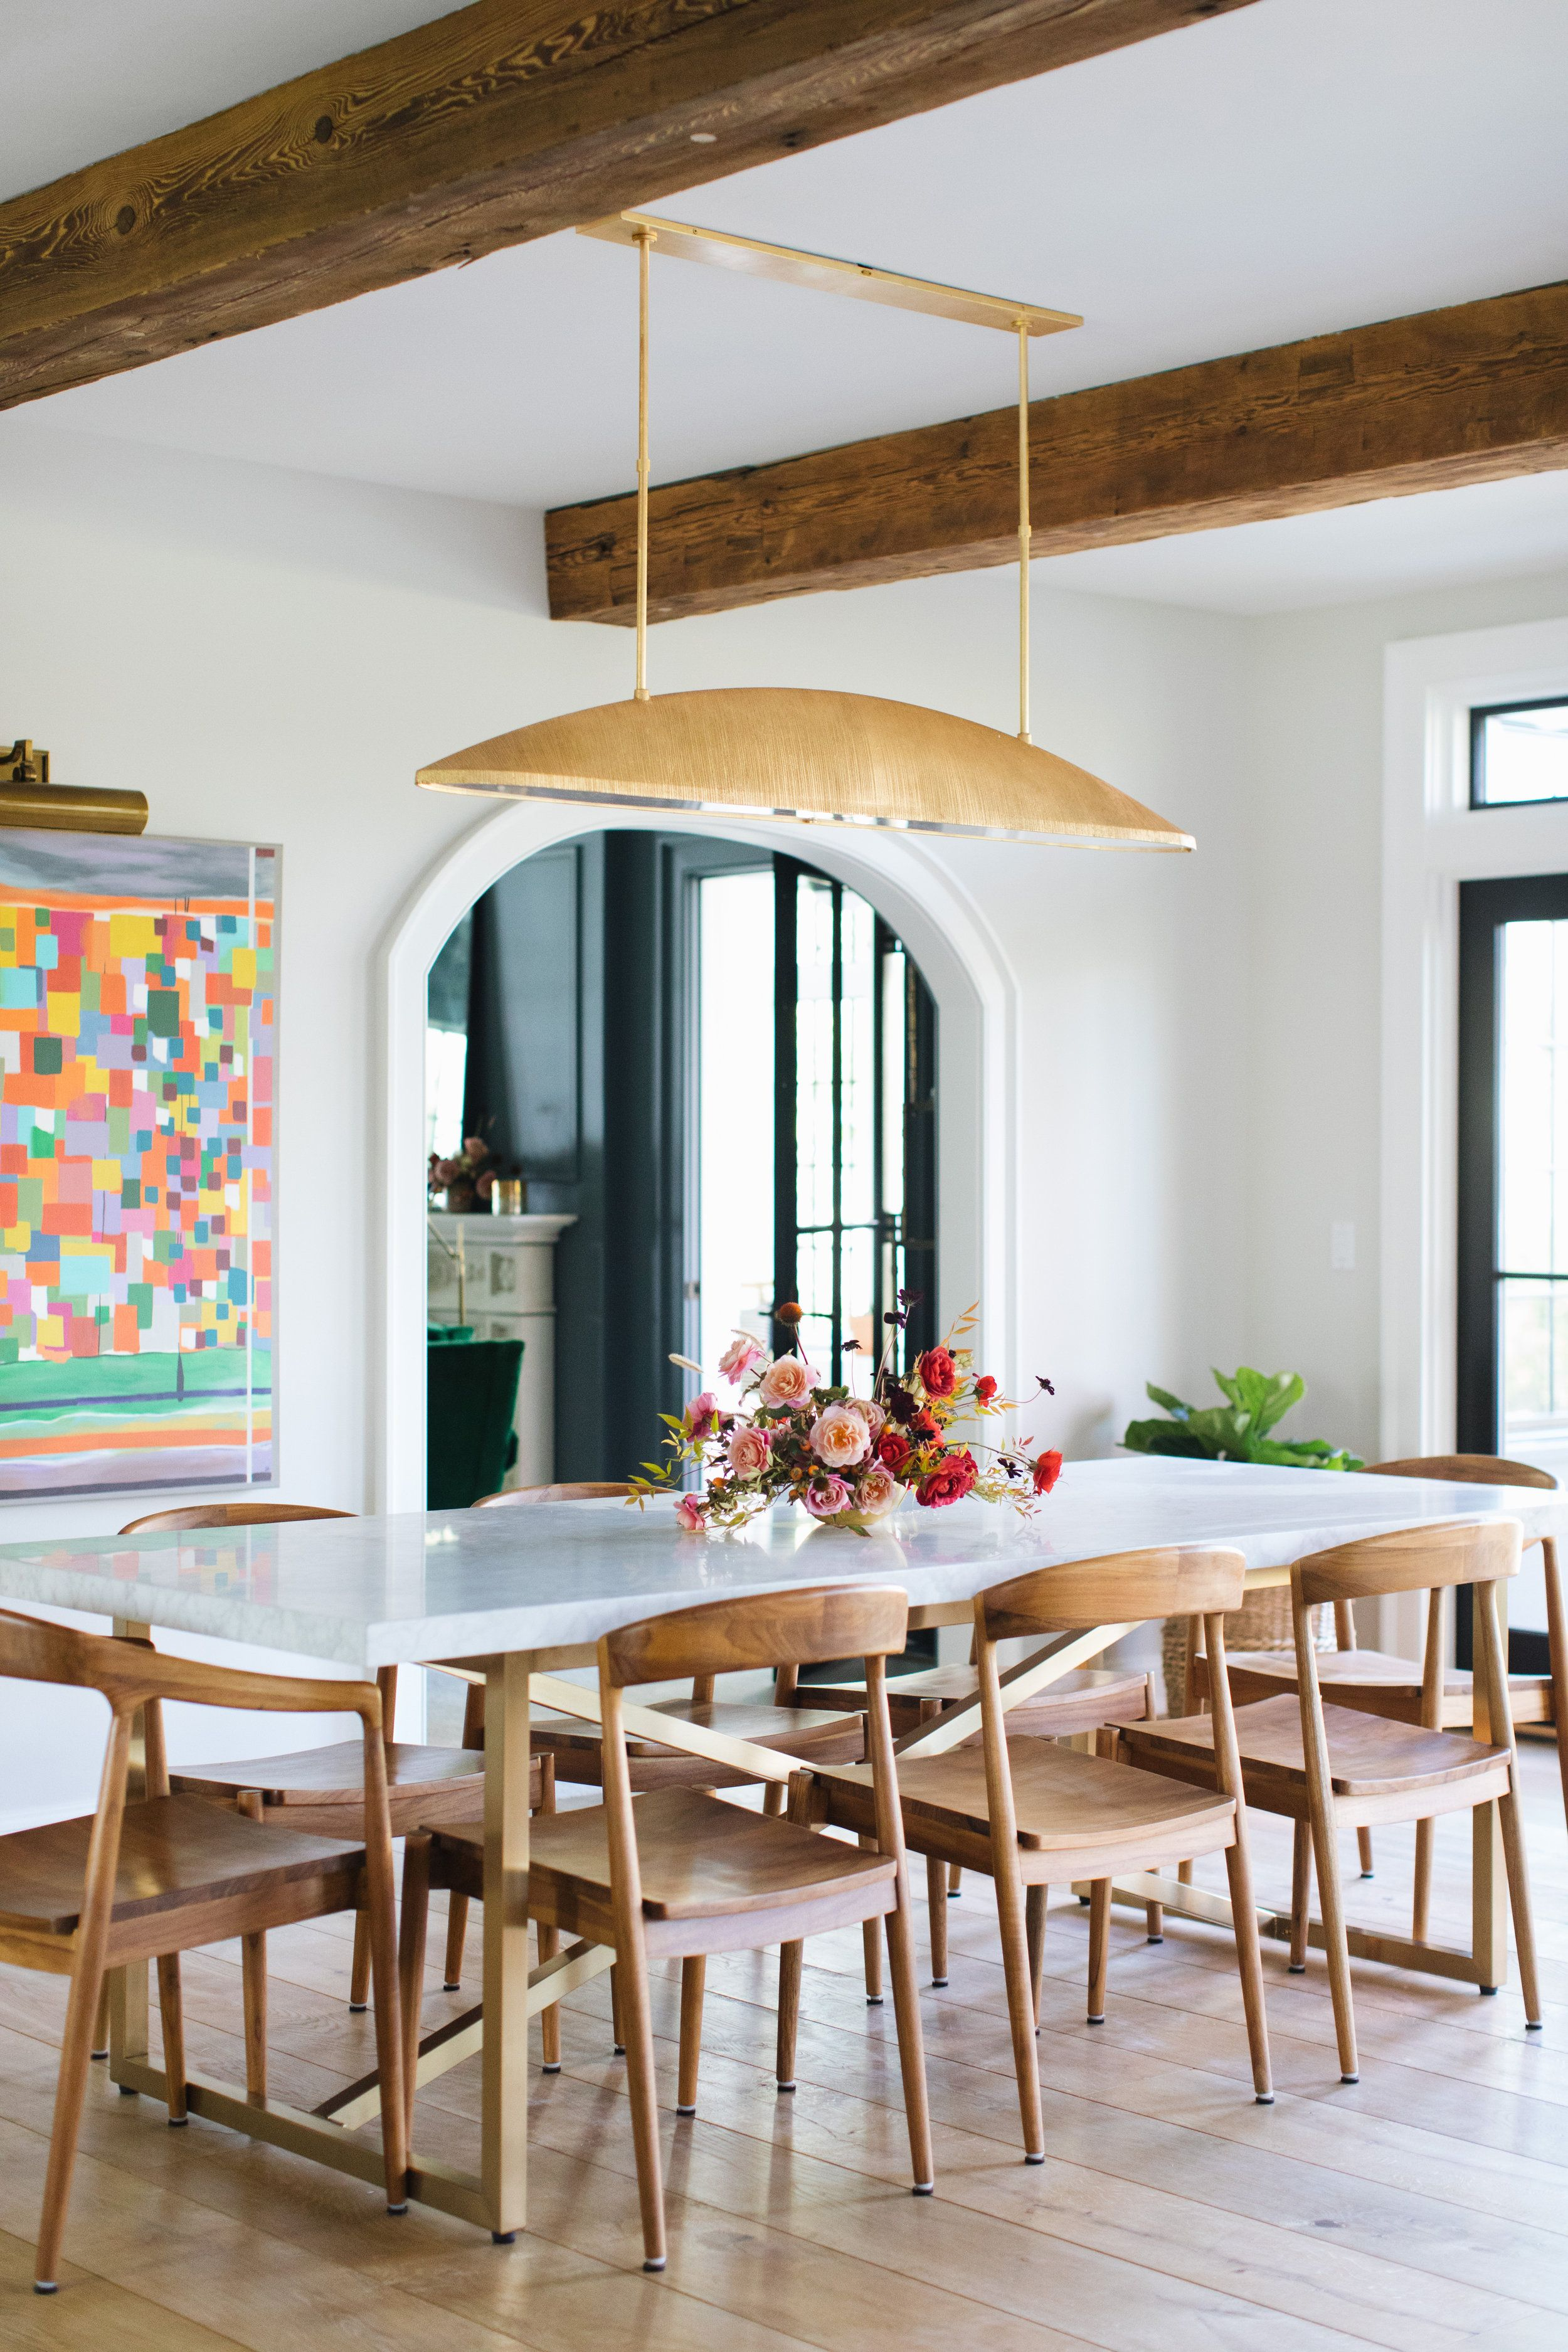 Modern Dining Room With Gold Pendant Light By Kelly Wearstler On Thou Swell Thouswellblog Dining Room Sets Modern Dining Room Dining Room Decor